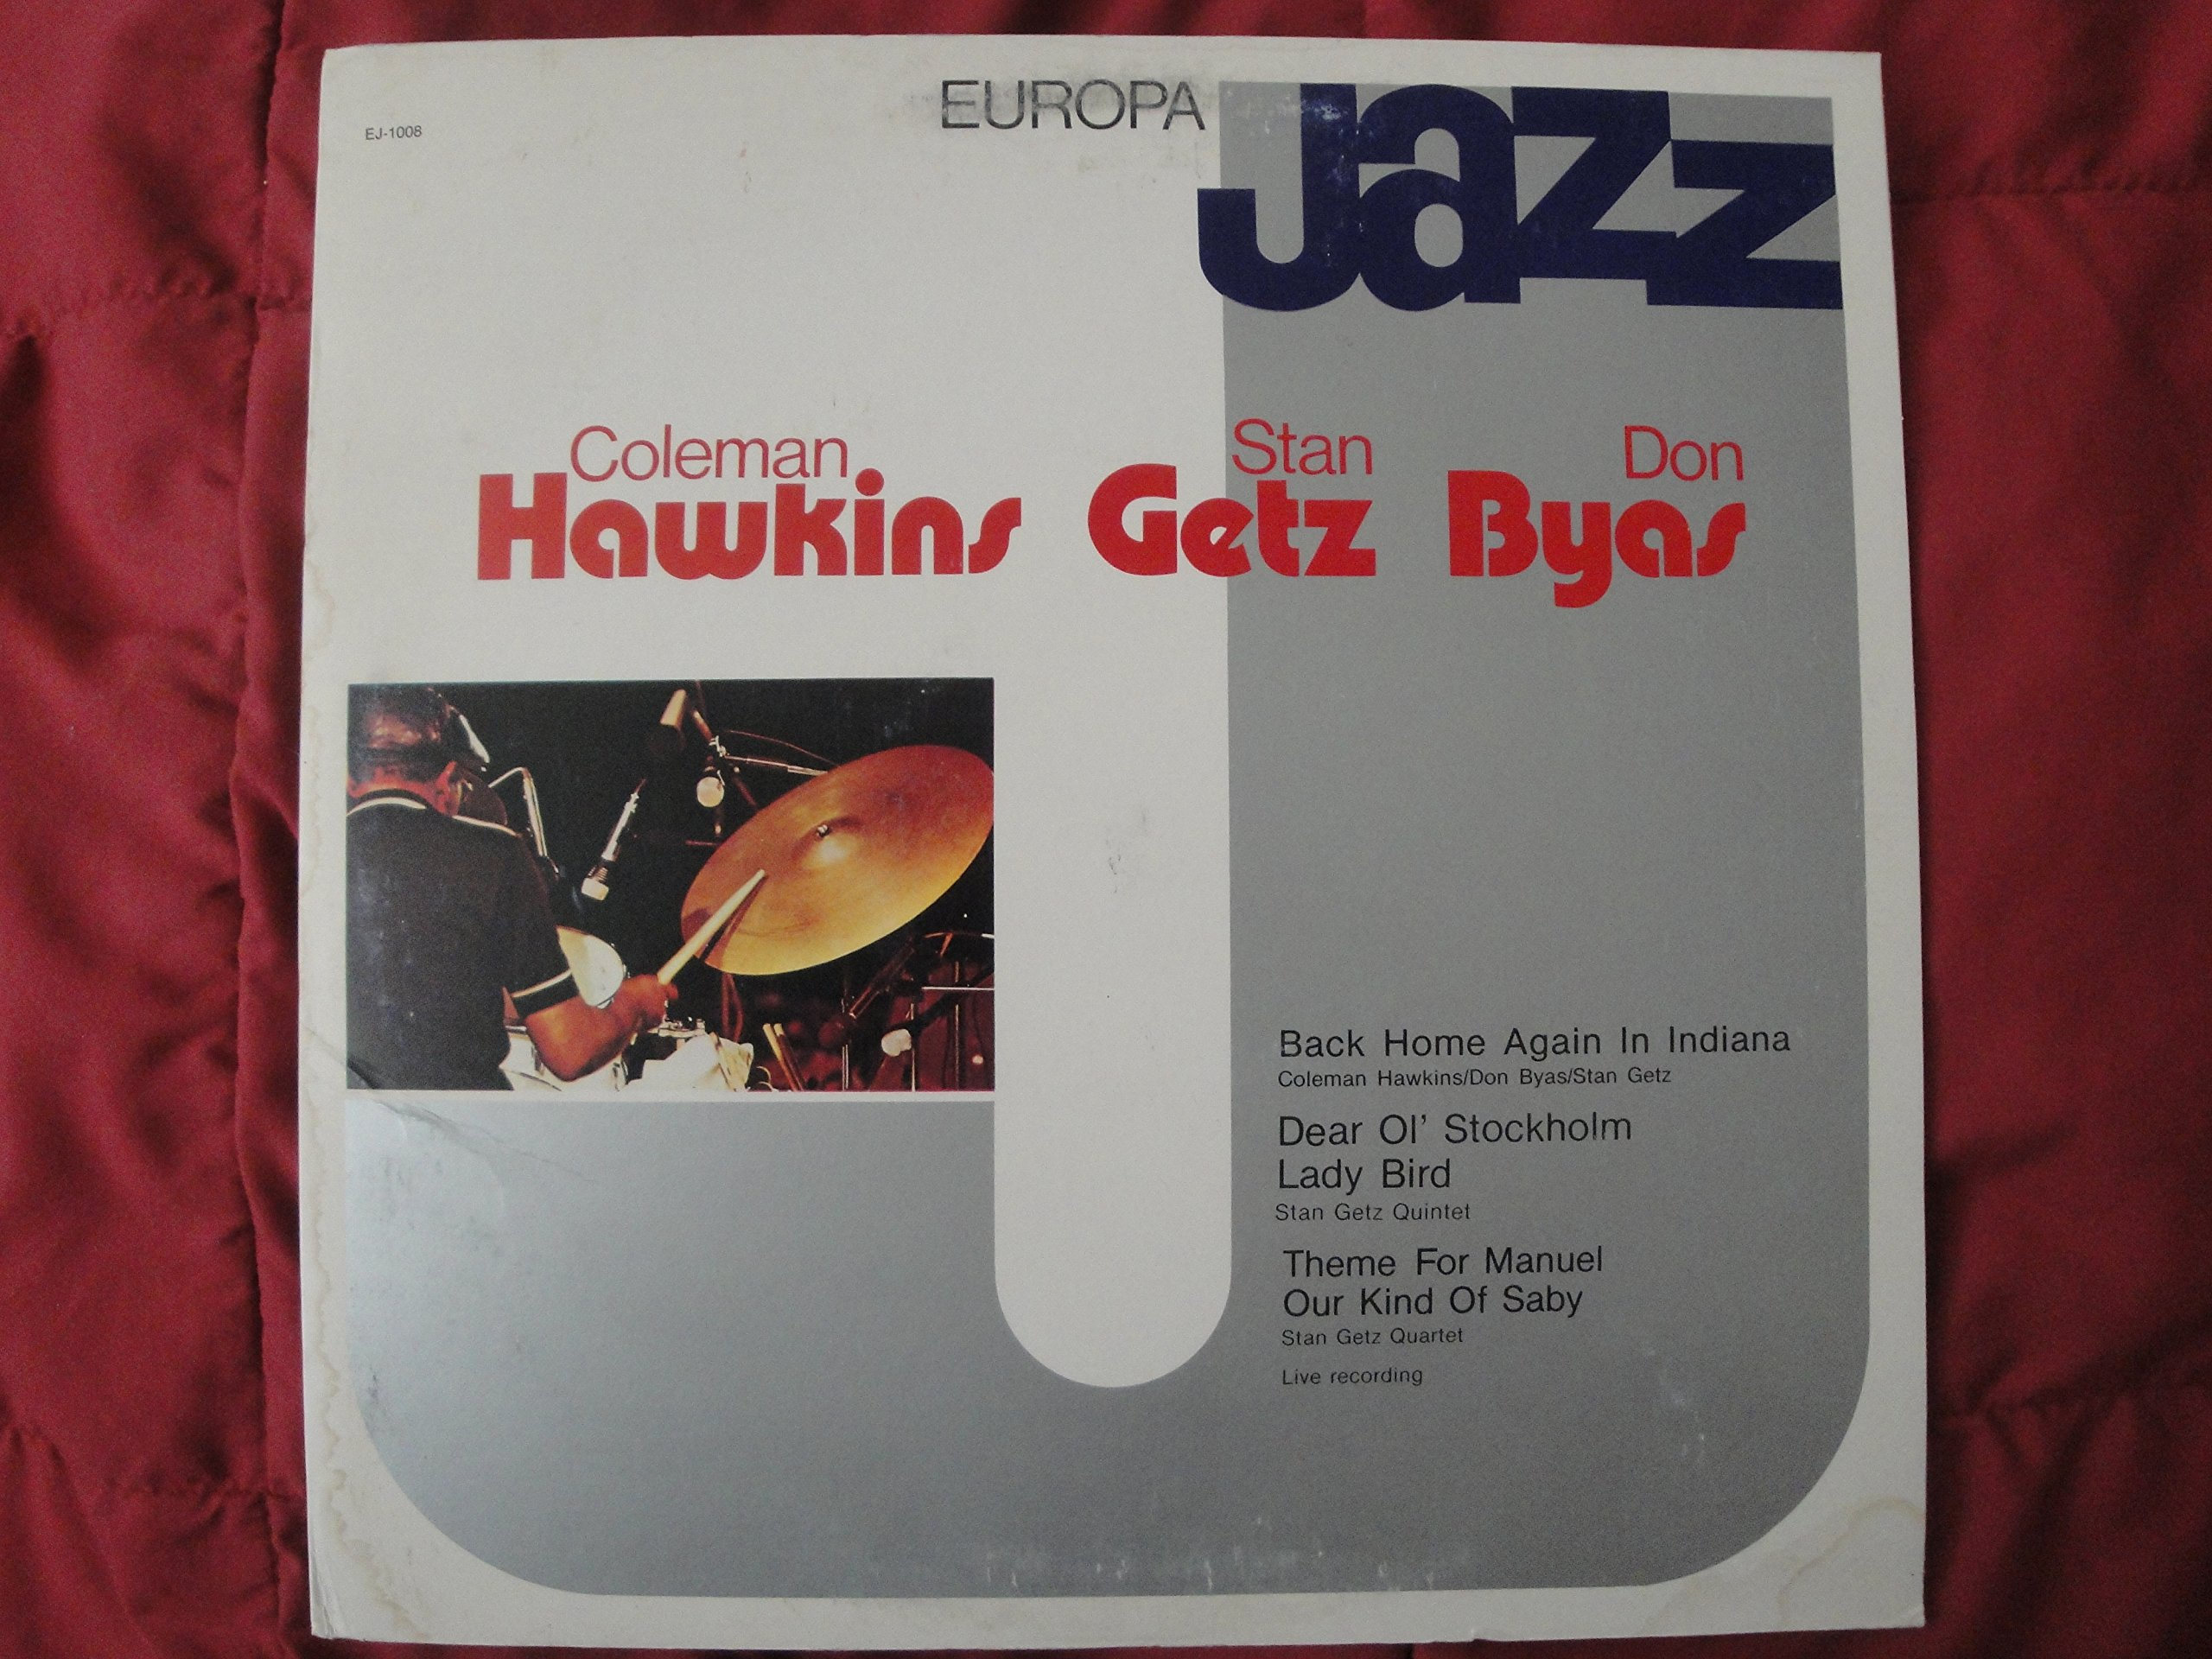 Europa Jazz with Coleman Hawkins, Stan Getz, Don Byas 1981 Made in Italy Wonderful Jazz Vinyl Lp EJ-1008 ''Back Home Again in Indiana'', ''Dear Ol' Stockholm Lady Bird'' ''Theme For Manuel Our Kind Of Saby'' Live Recording Ex